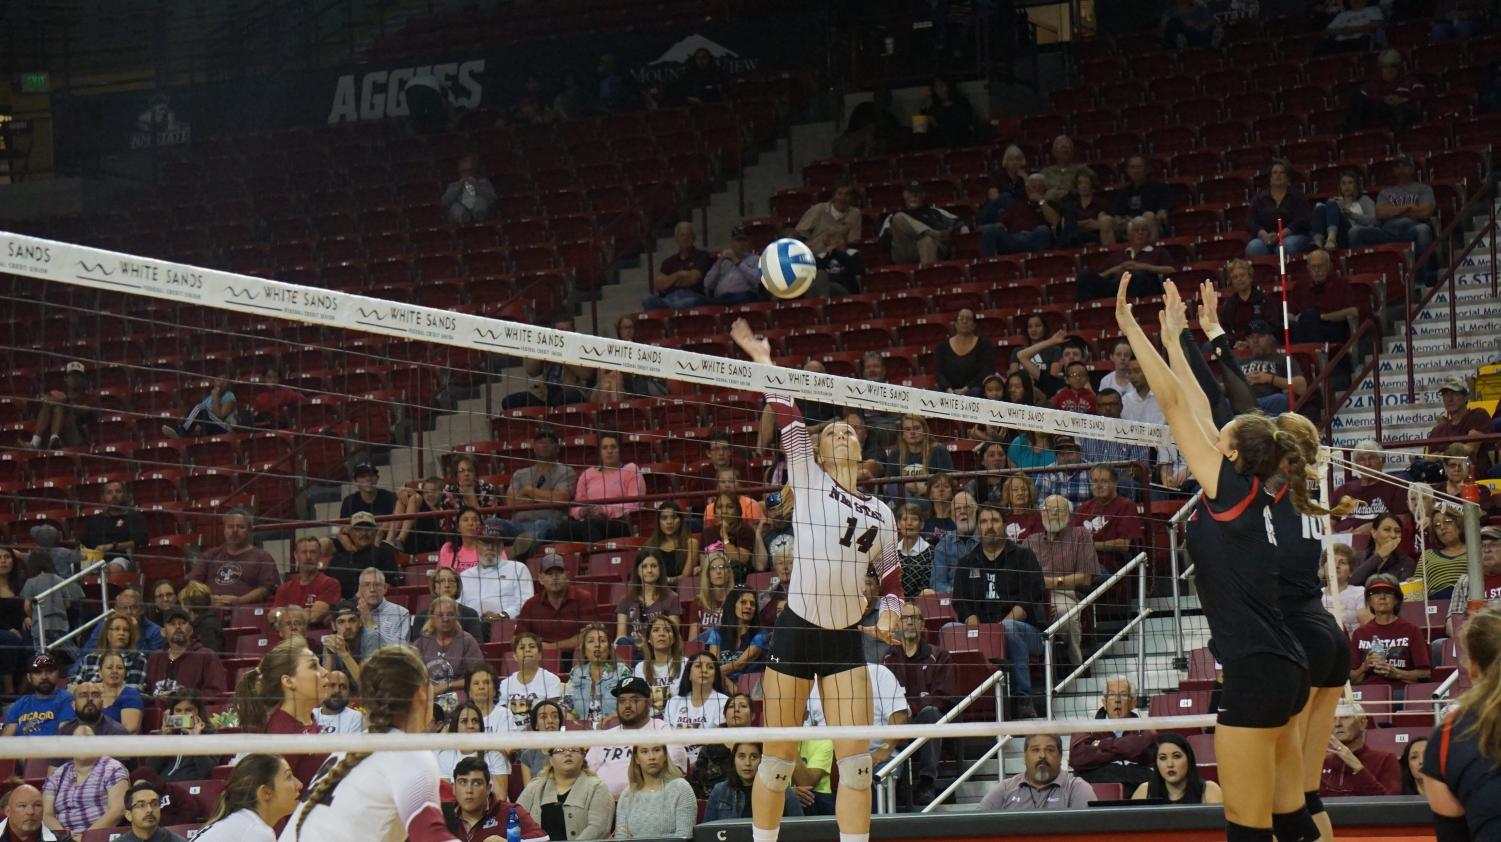 The Aggies defeated Seattle U and improved their winning streak to eight matches in a row.